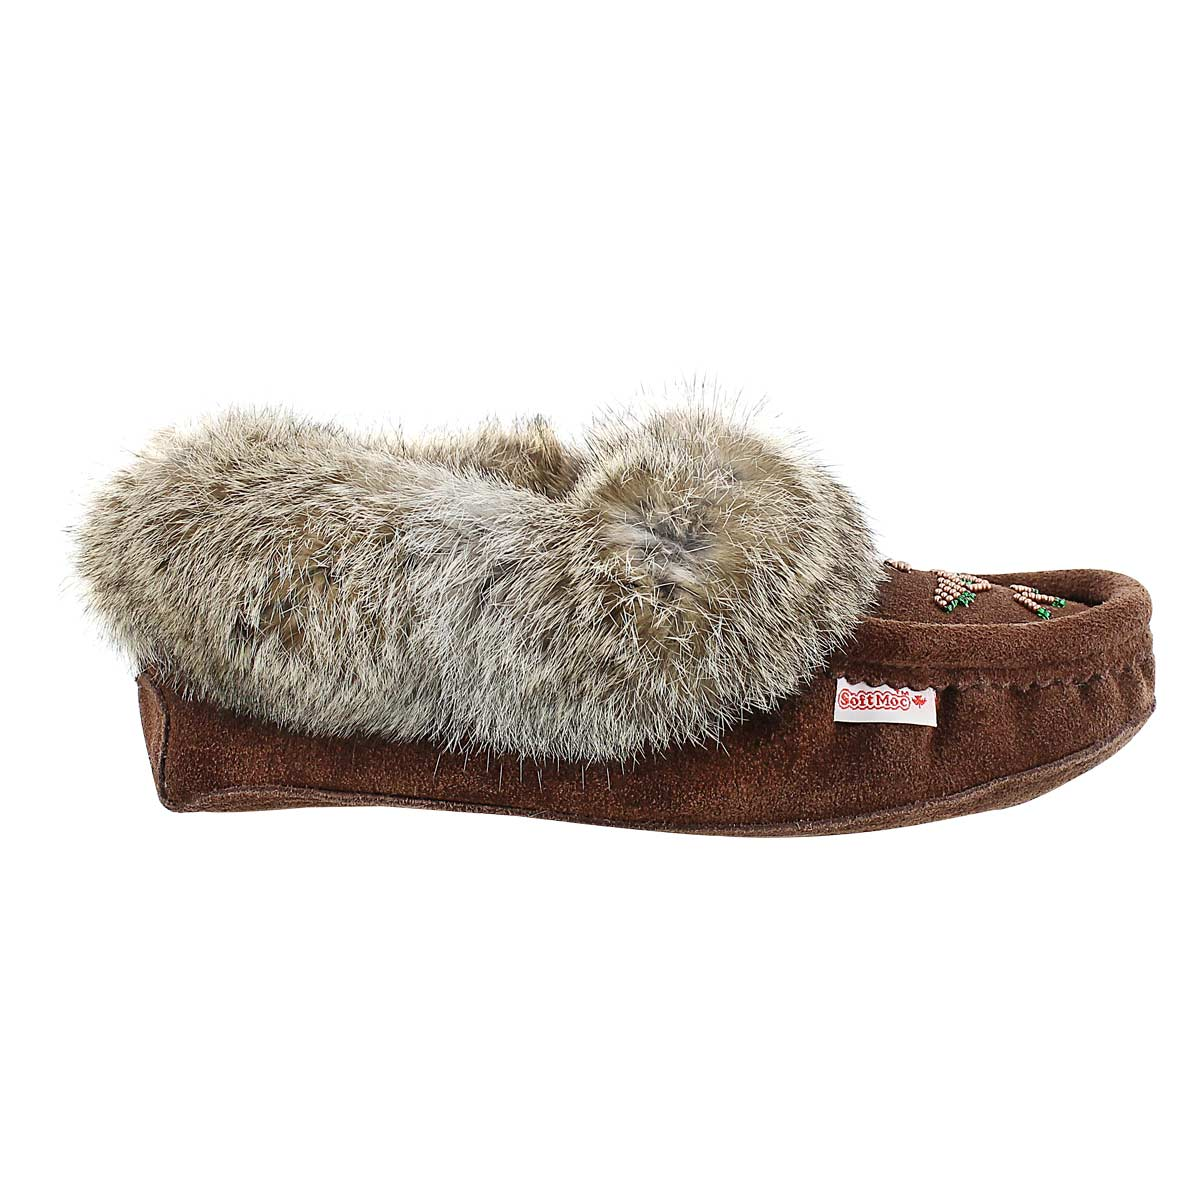 Lds chocolate rabbit fur moccasin